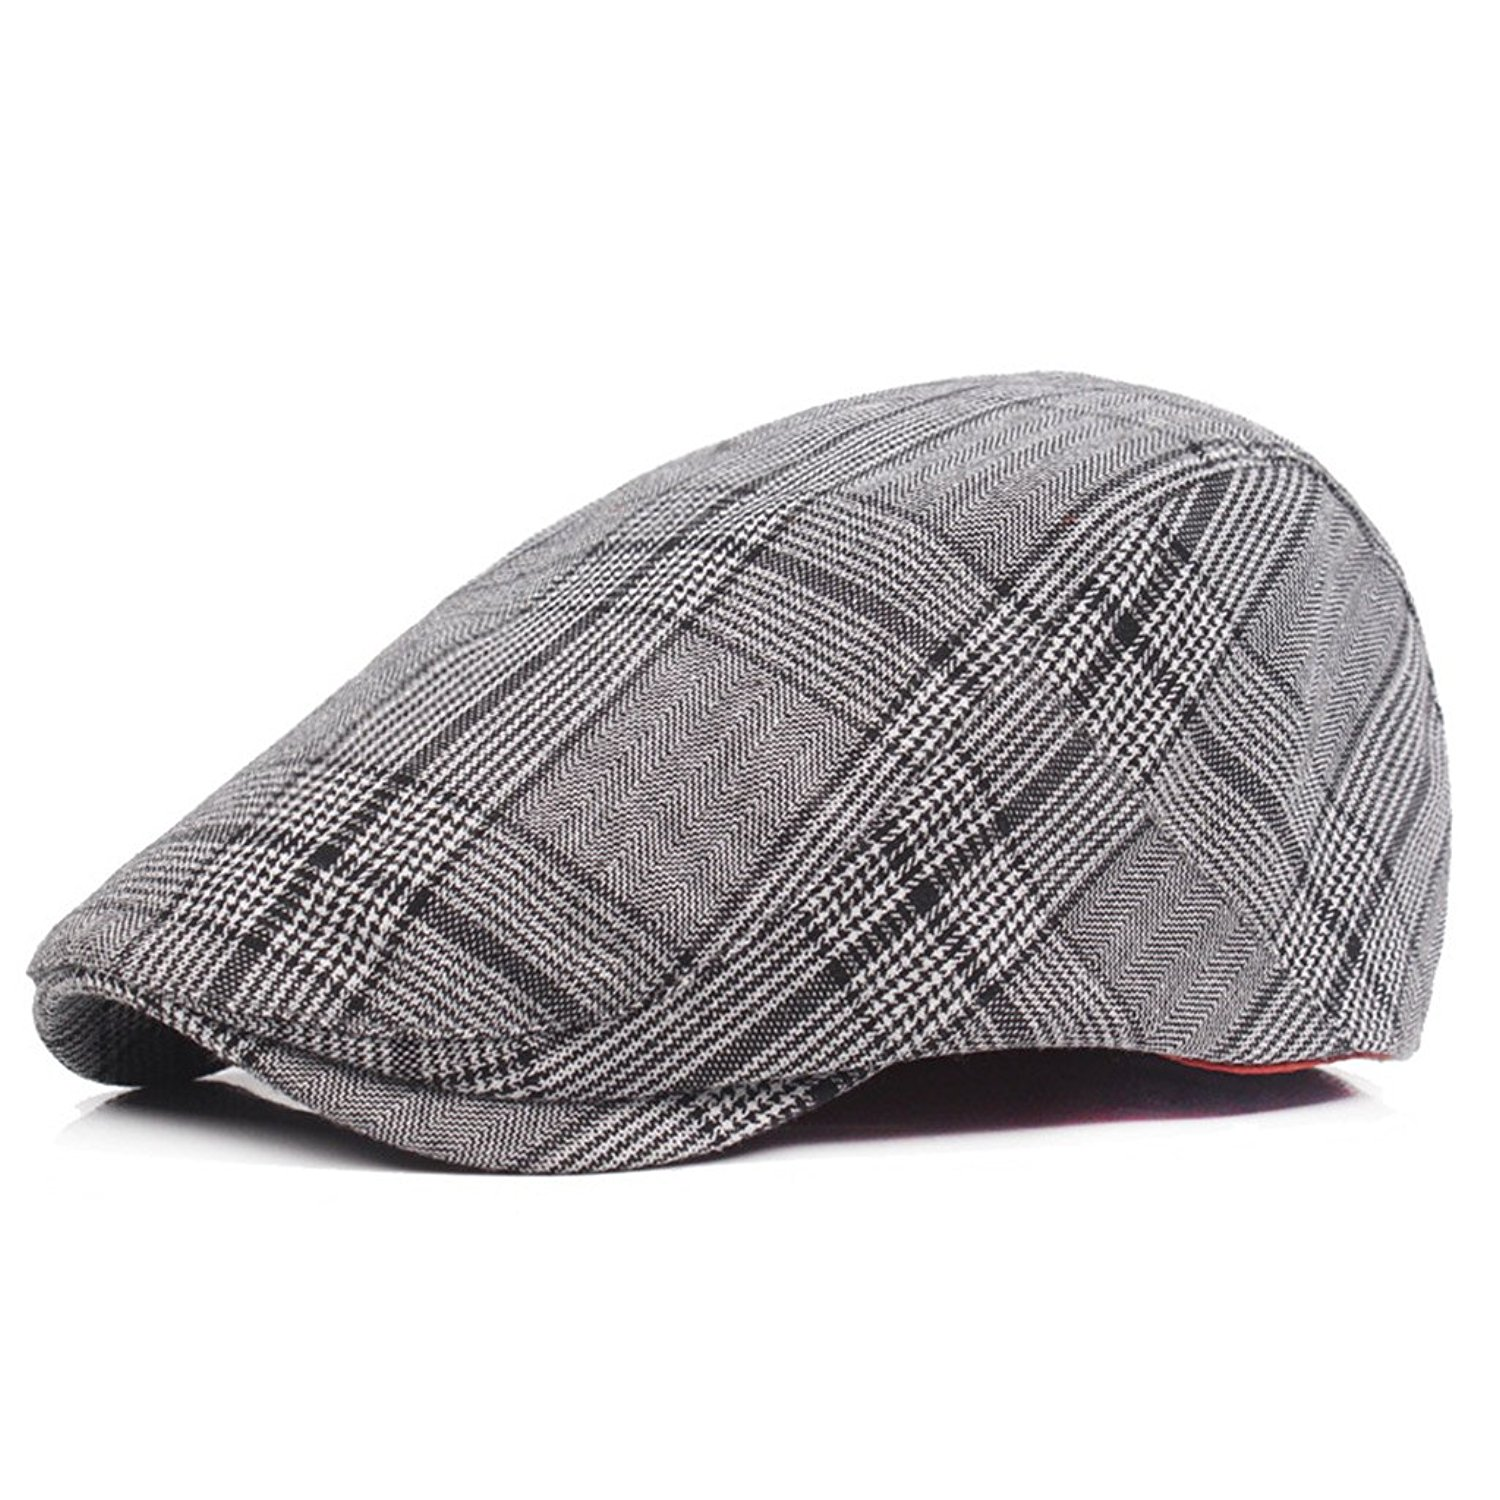 249cb1ba8 Cheap Golf Cabbie Hat, find Golf Cabbie Hat deals on line at Alibaba.com